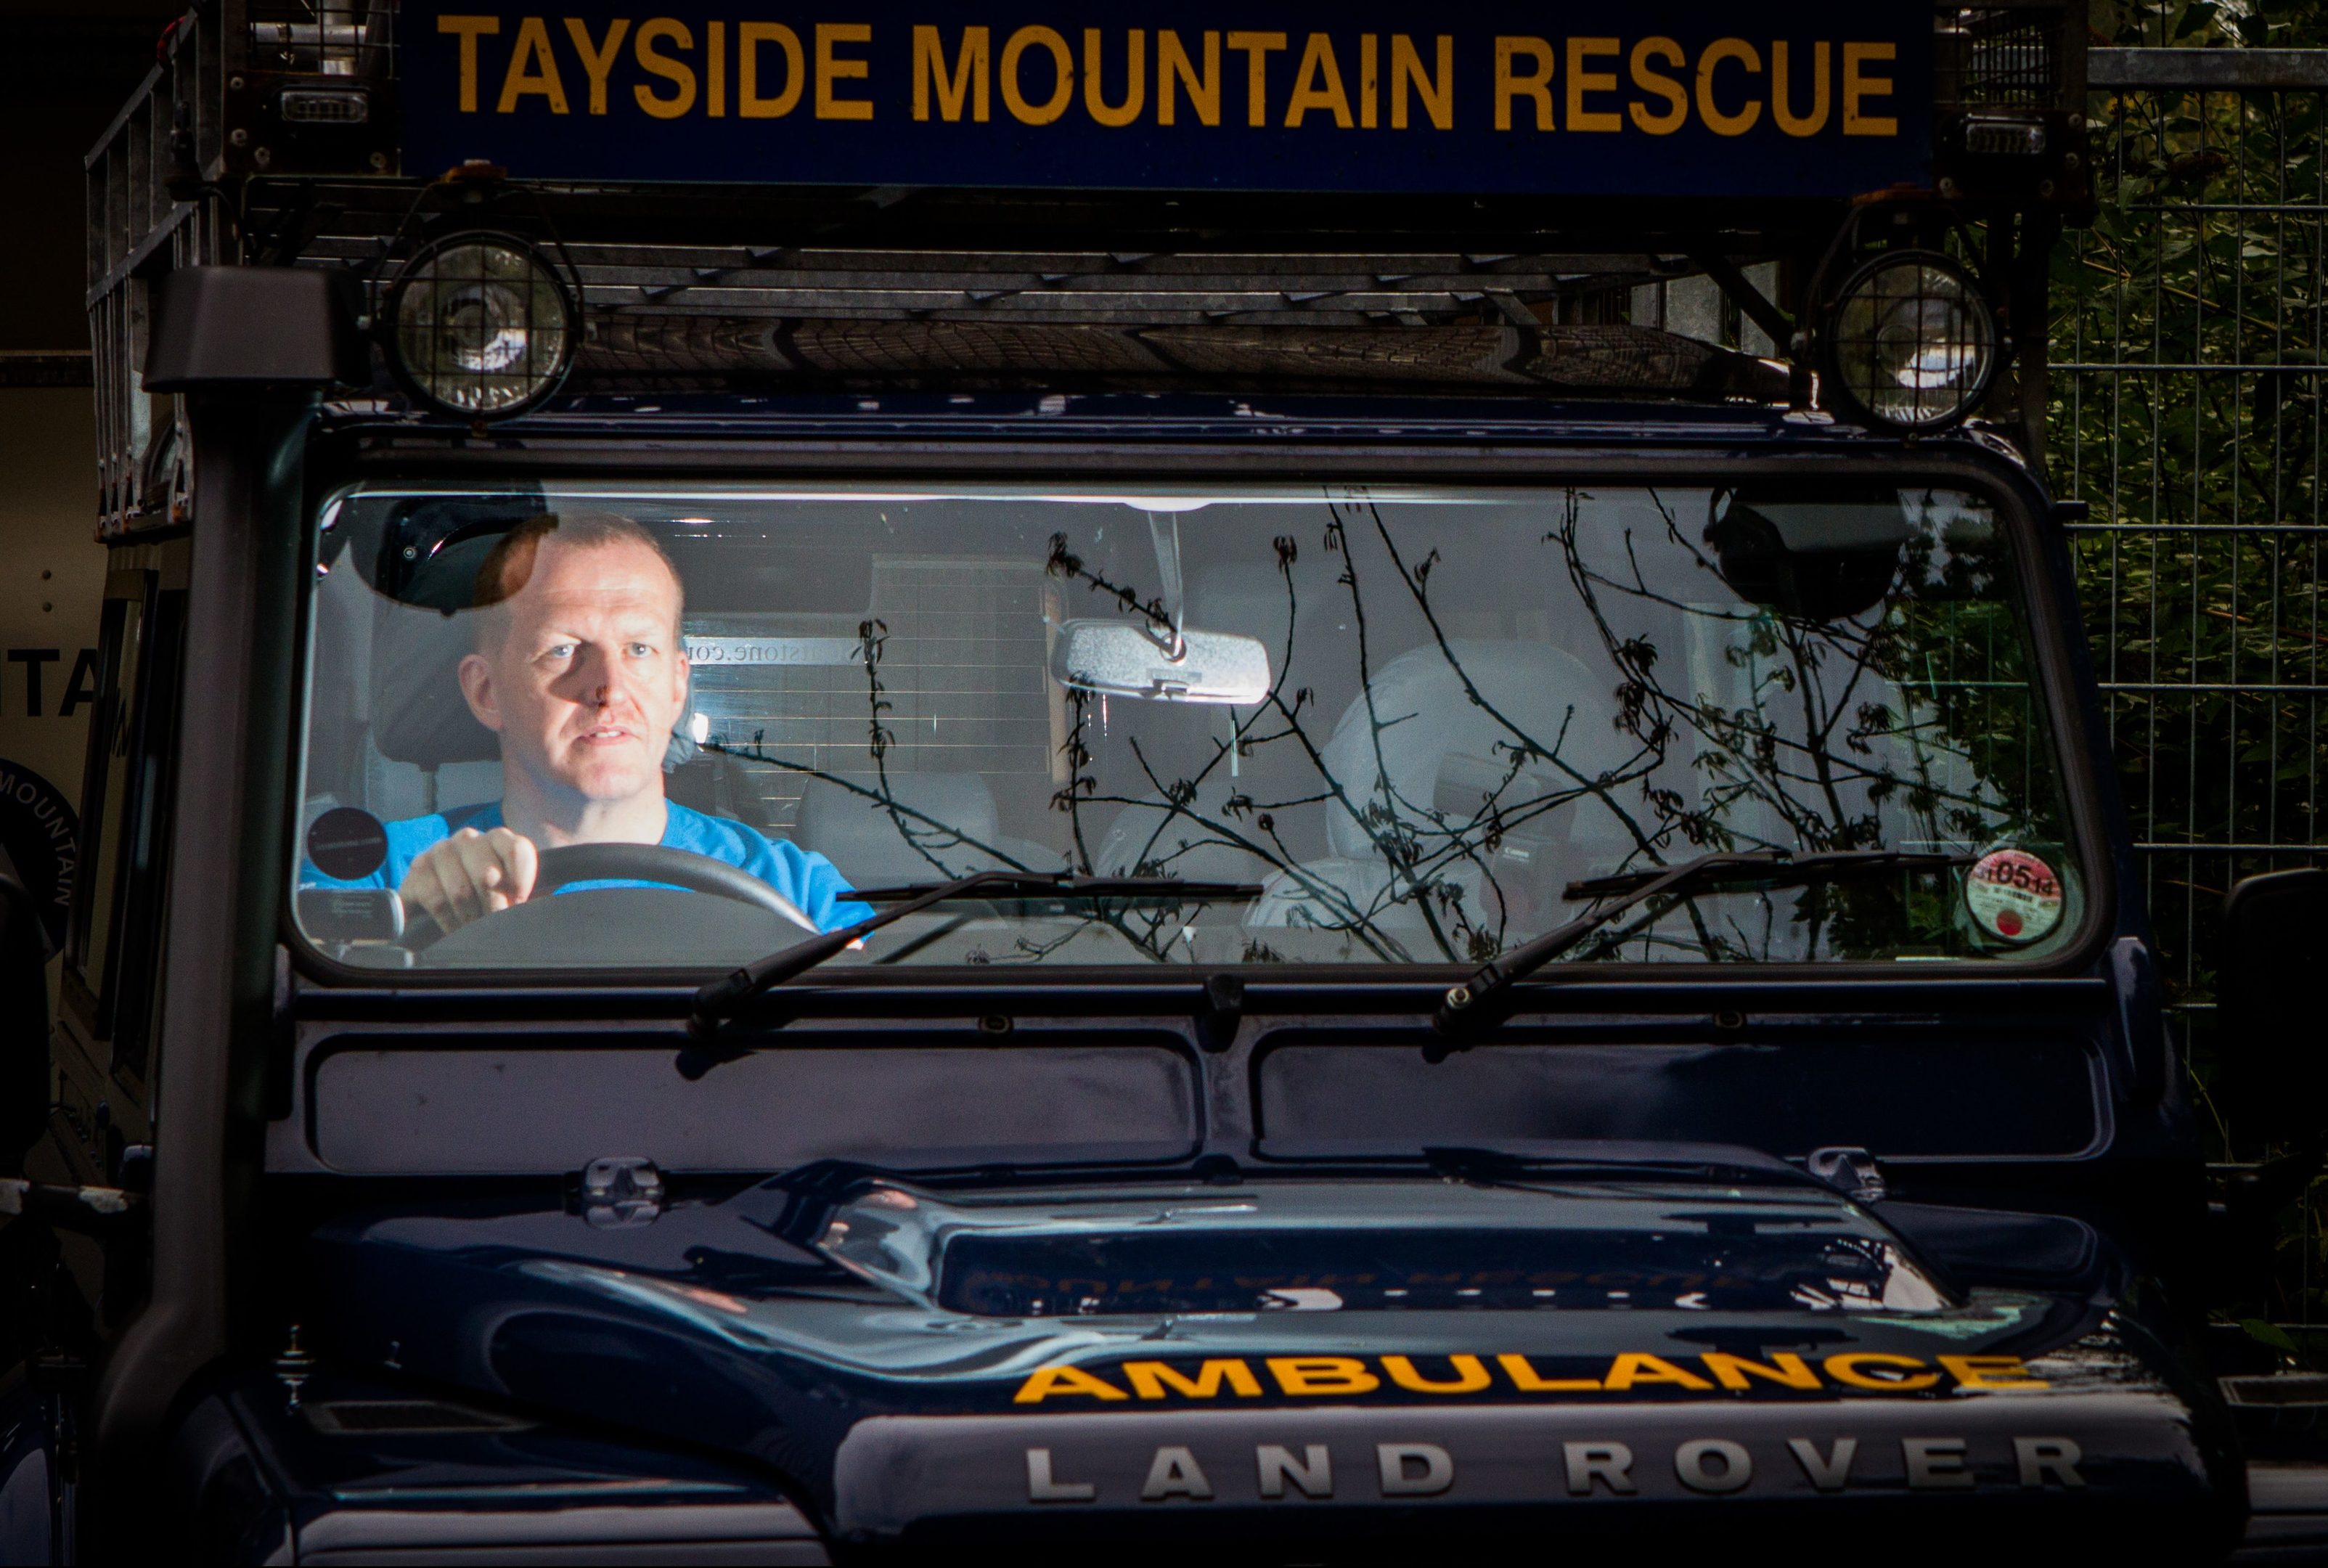 Tayside Mountain Rescue.